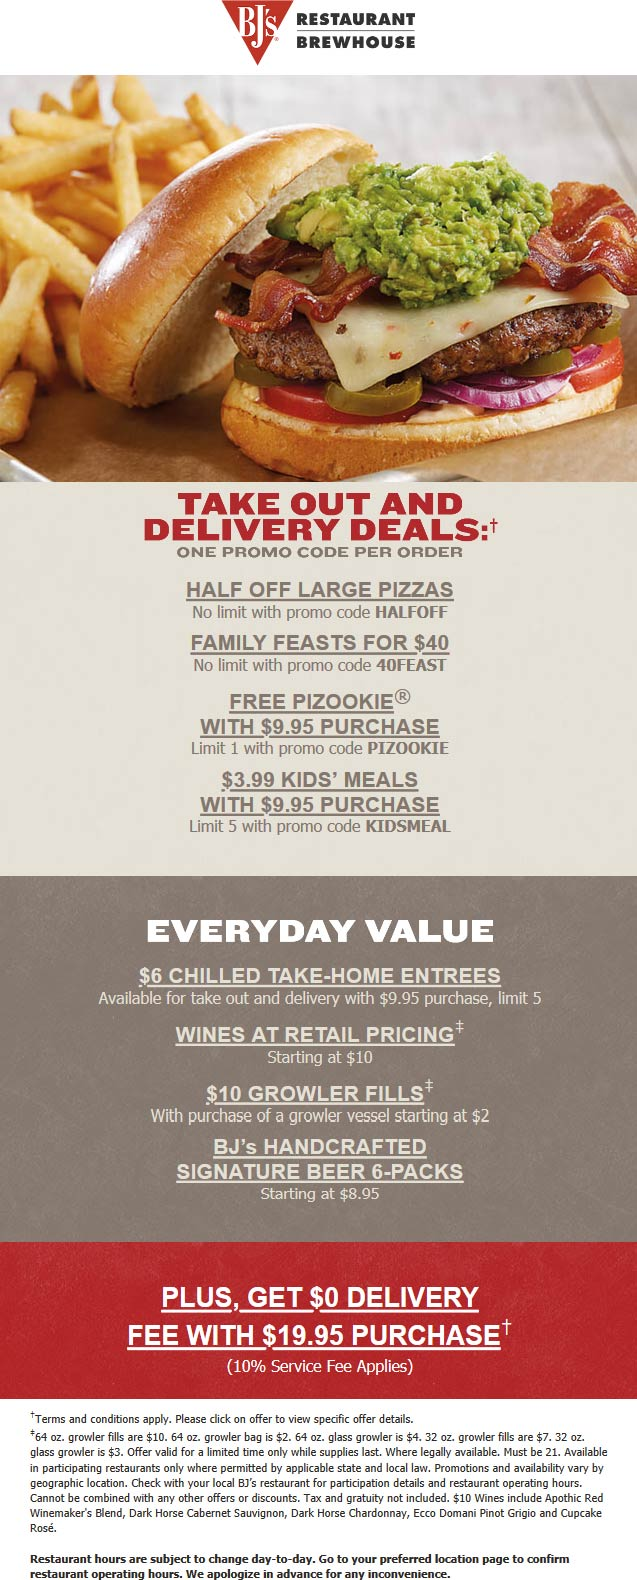 BJs Restaurant coupons & promo code for [January 2021]